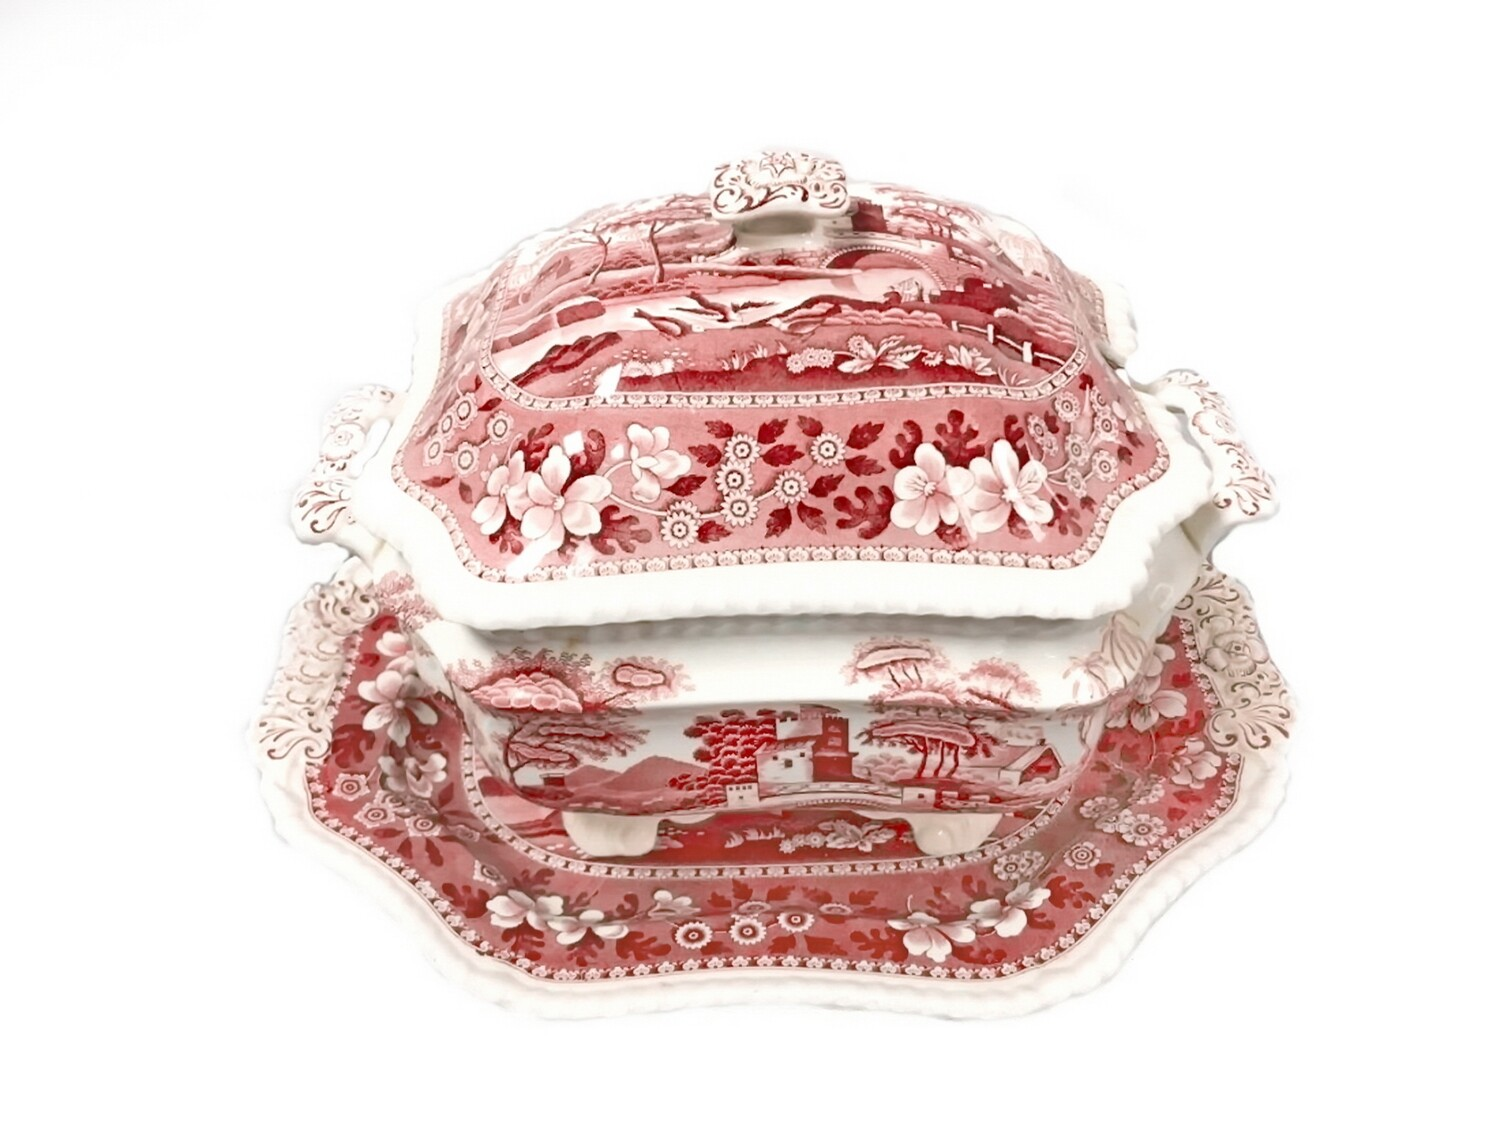 3pc Spode Pink Tower Sauce Boat Gravy w Underplate Pink Red Transferware Server